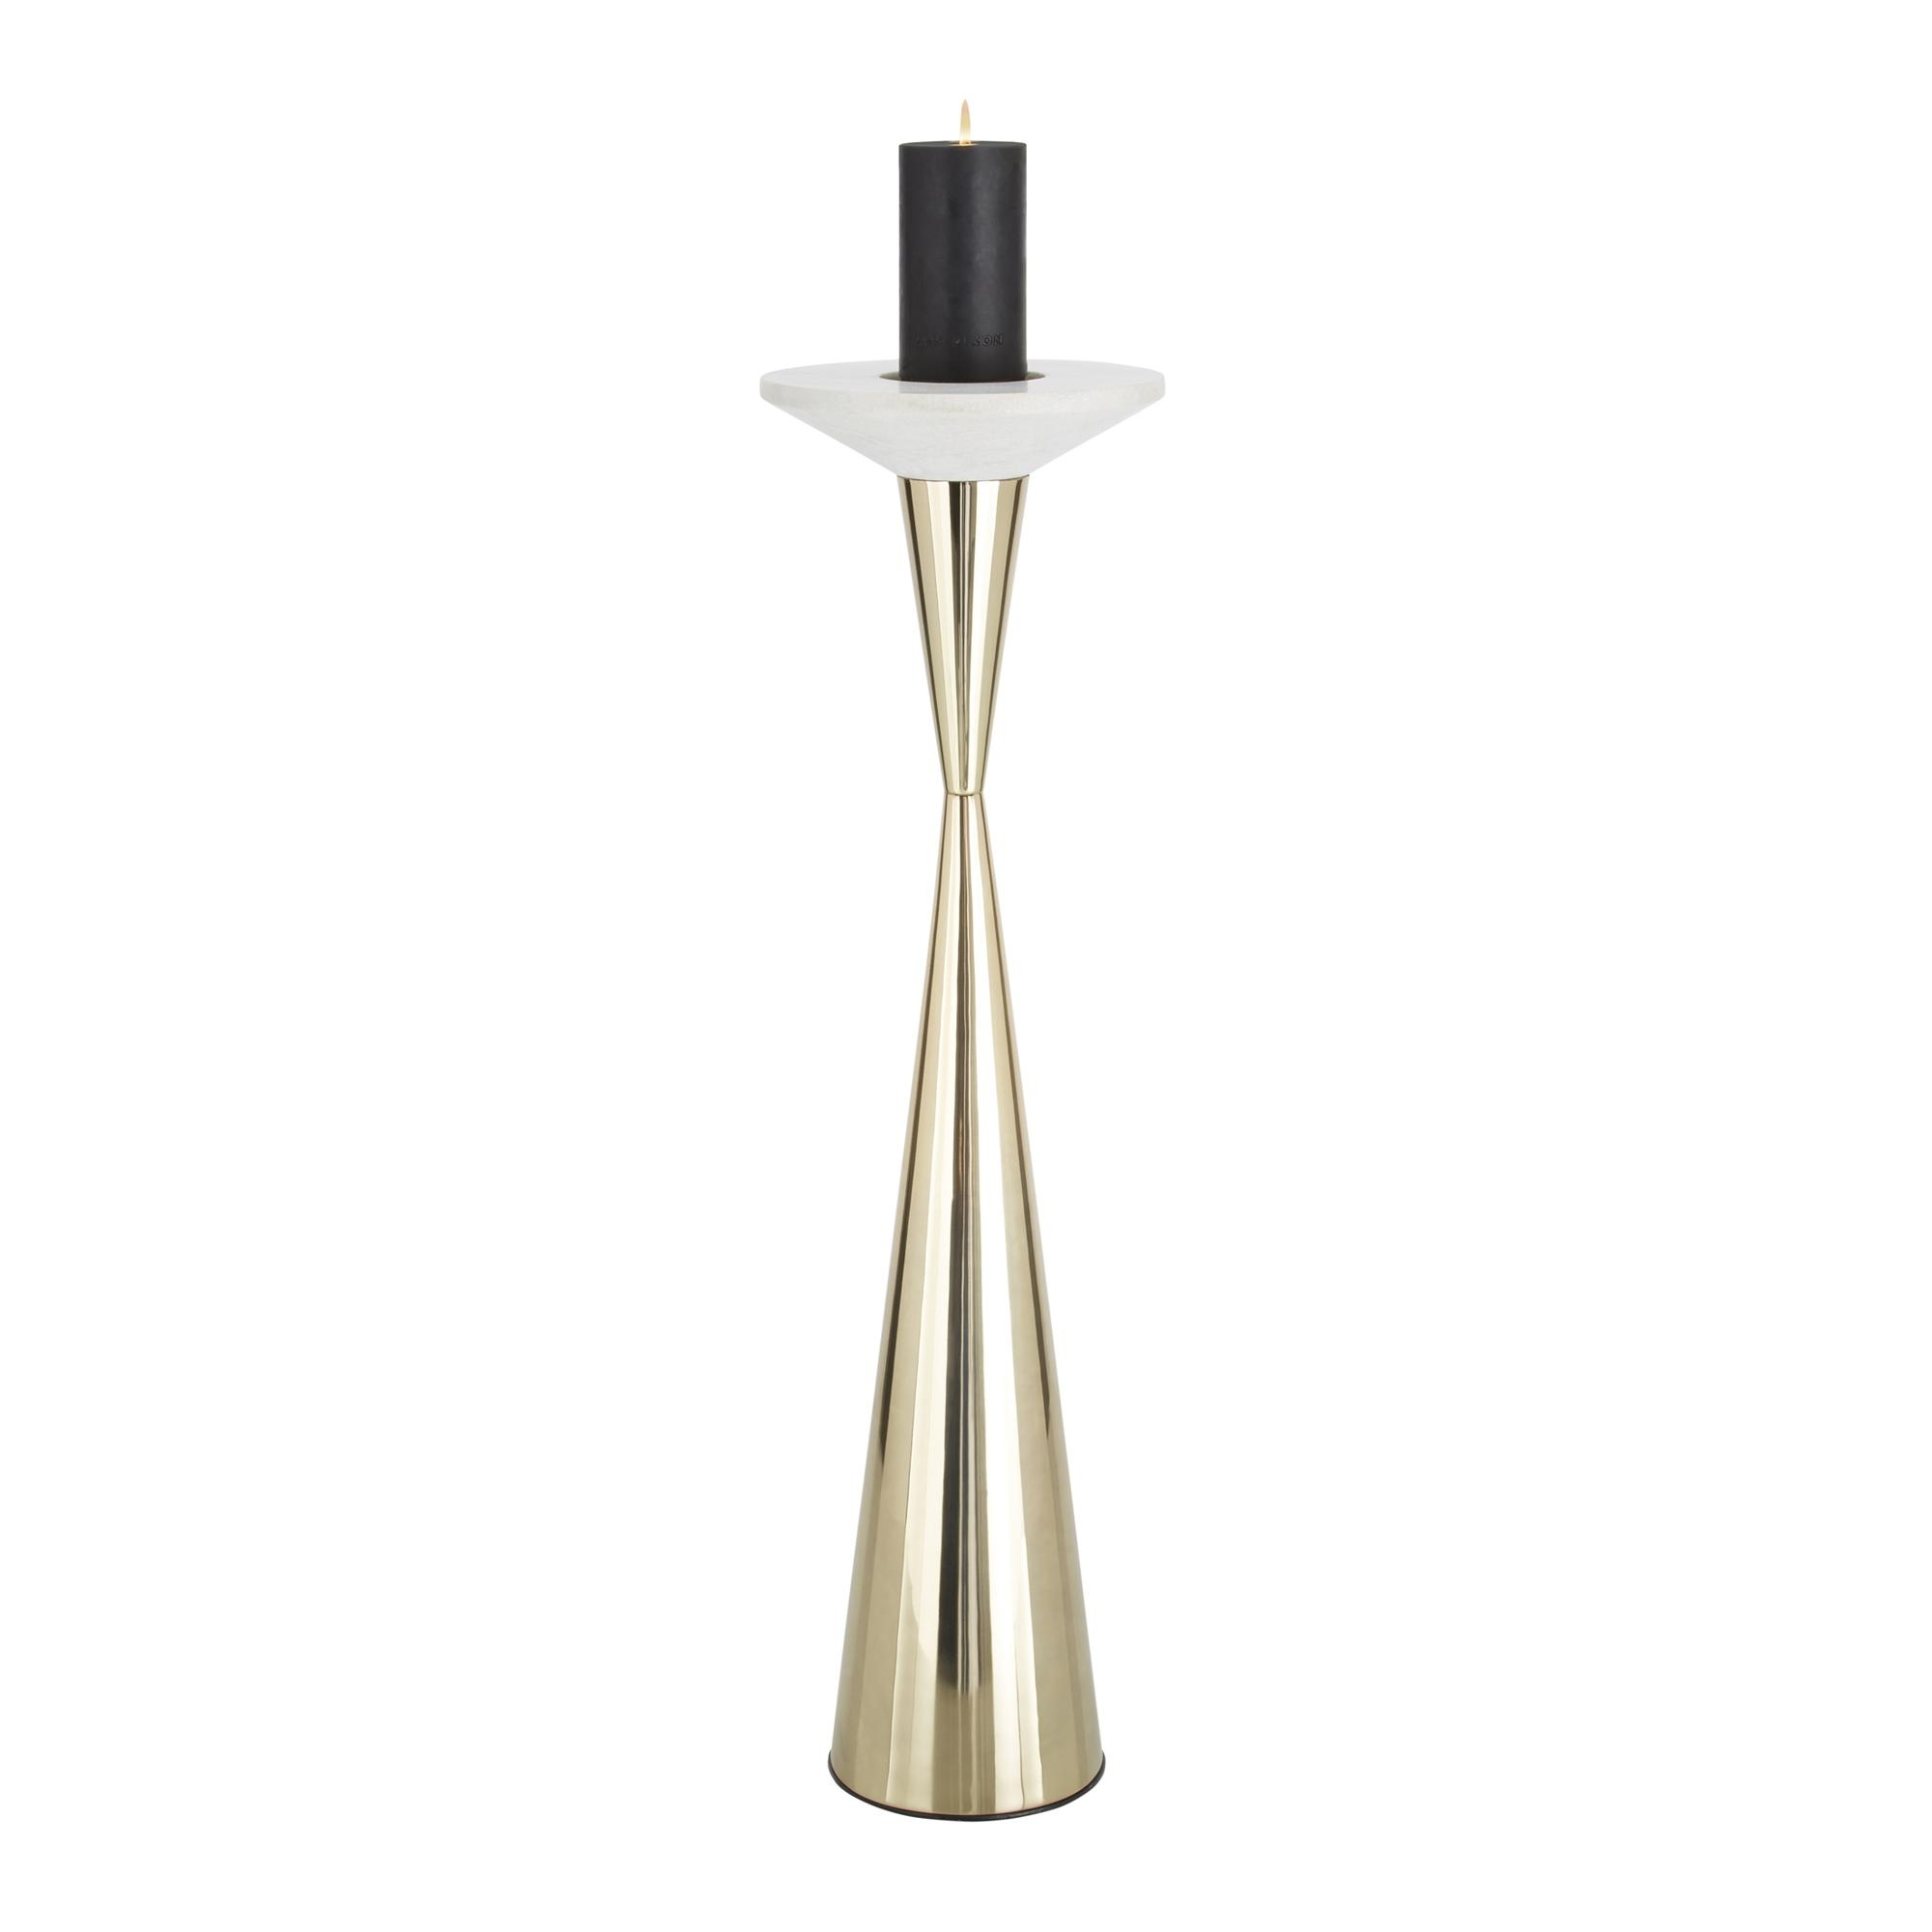 Tom Dixon - Stone Candle Holder H:91cm - brass/white/H 91cm/Ã 25cm